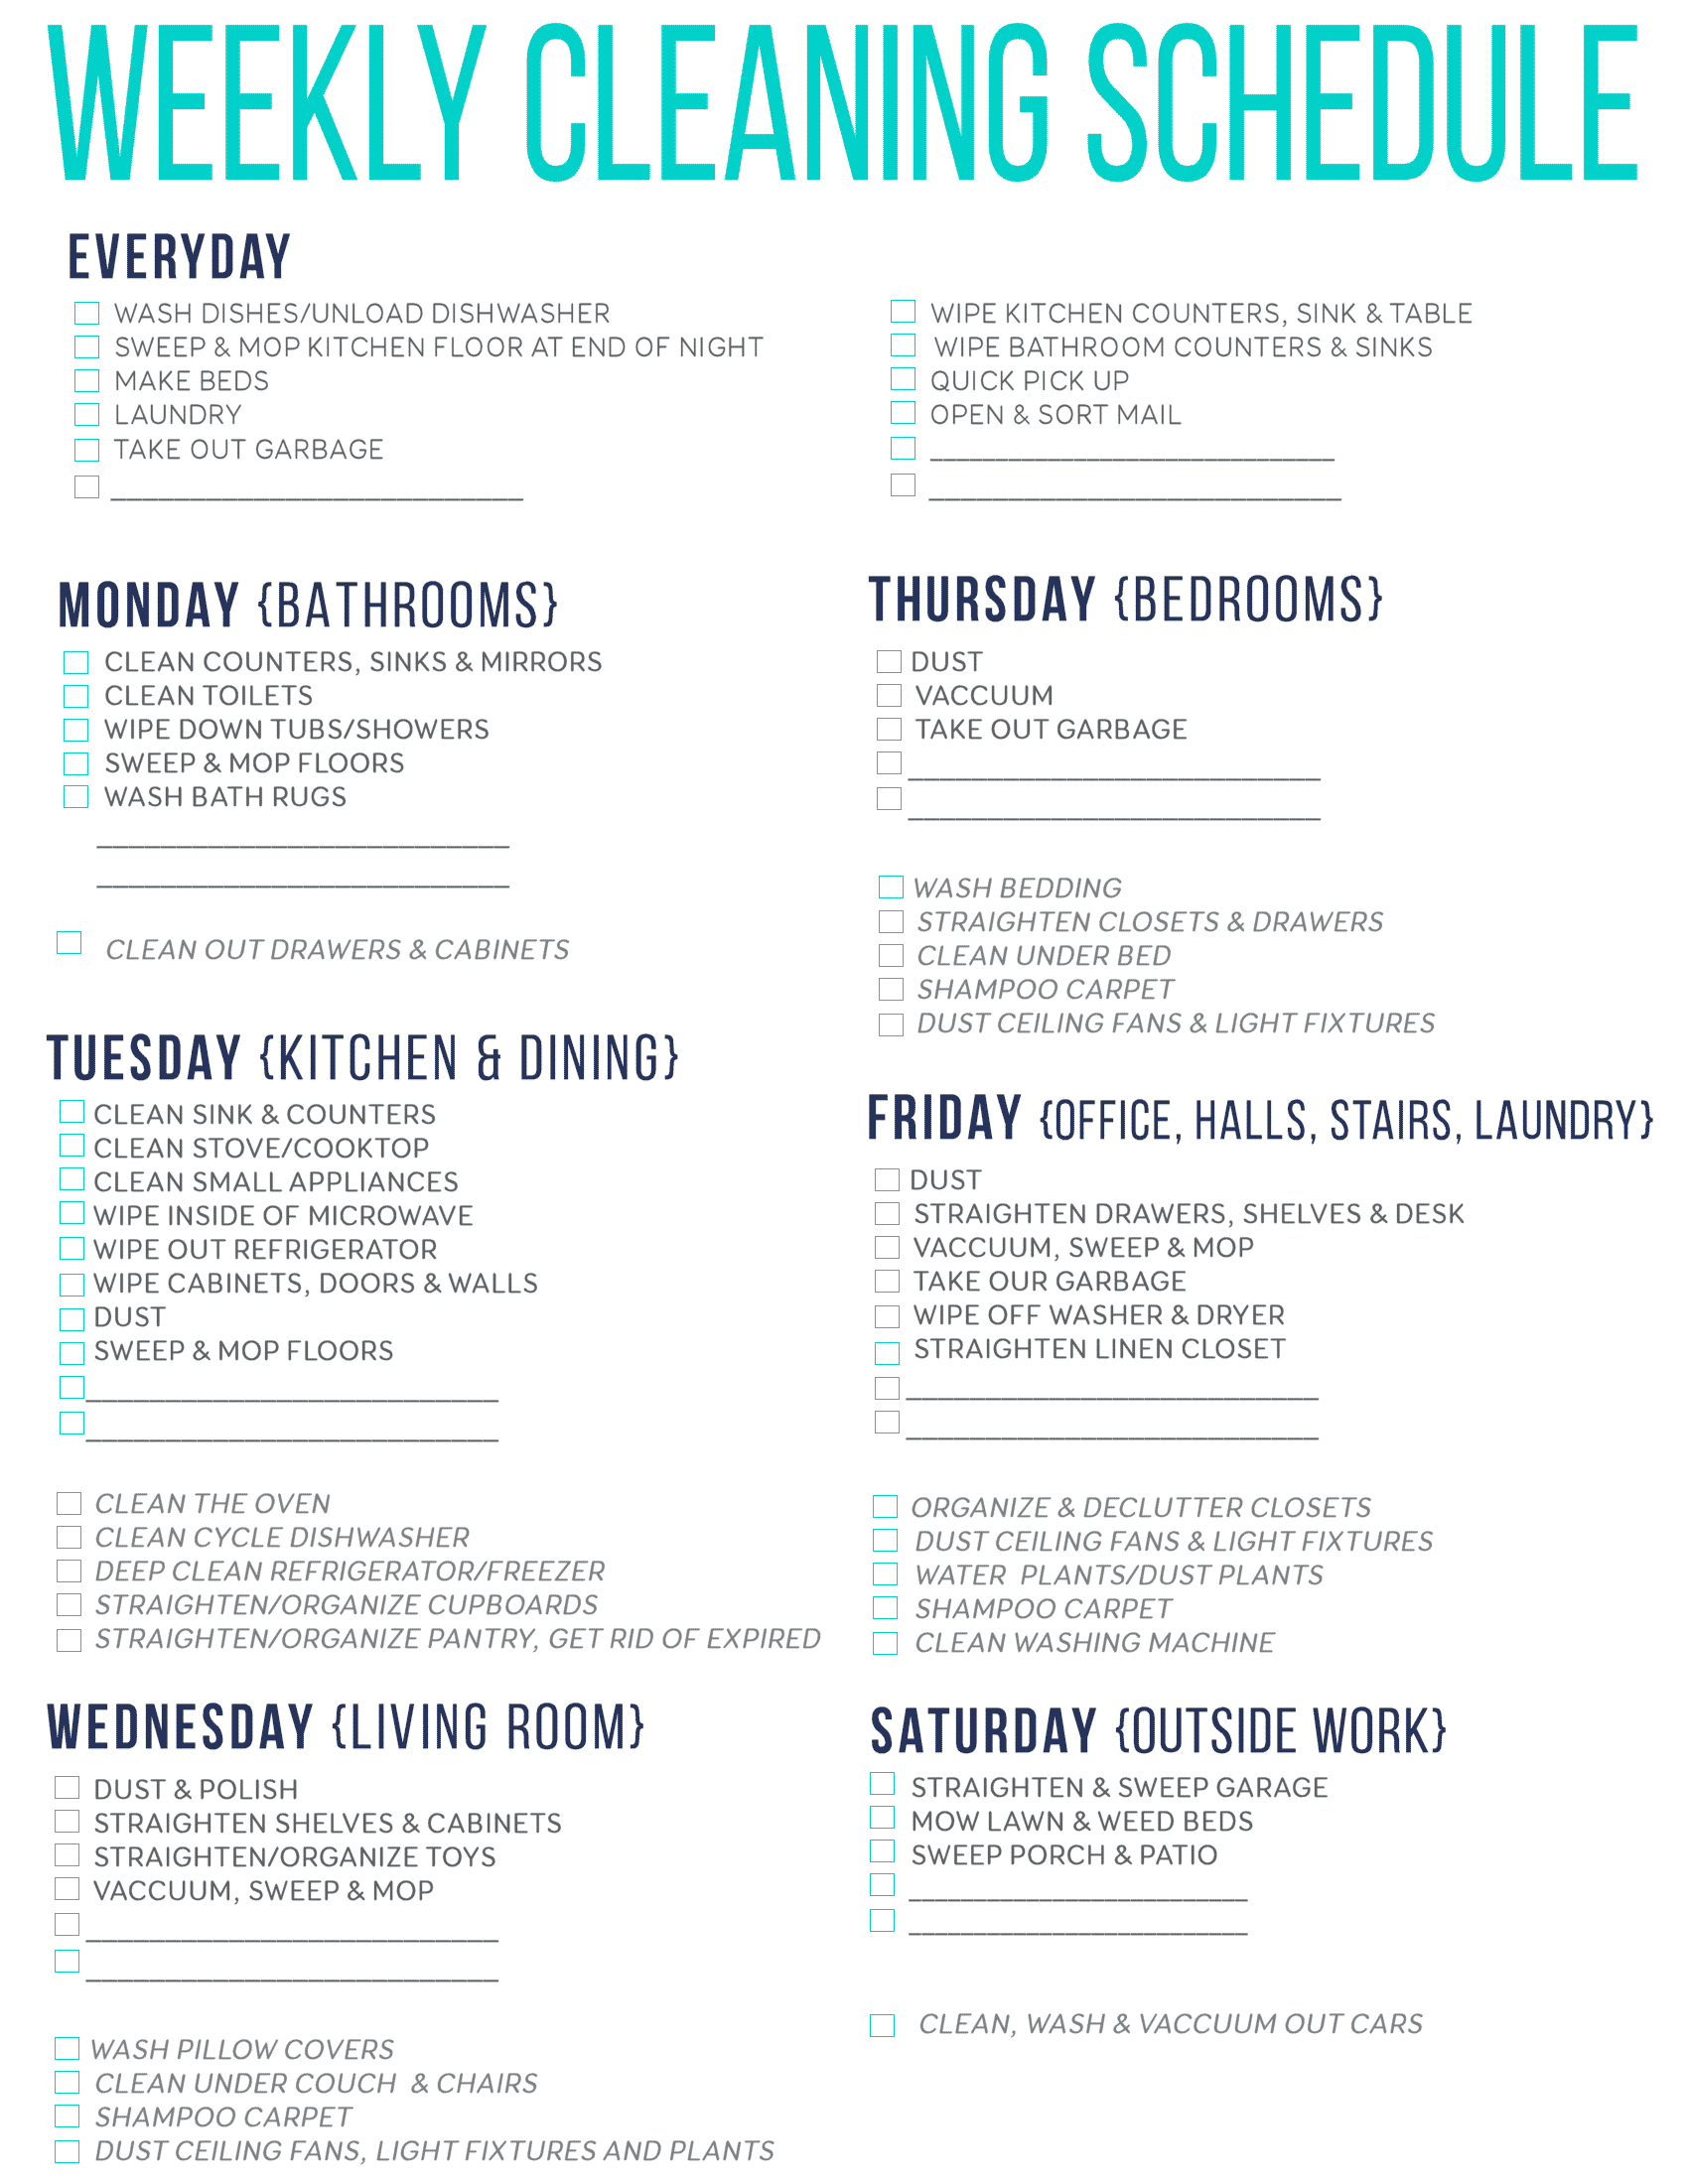 Bonus: Get a customizable free printable cleaning schedule